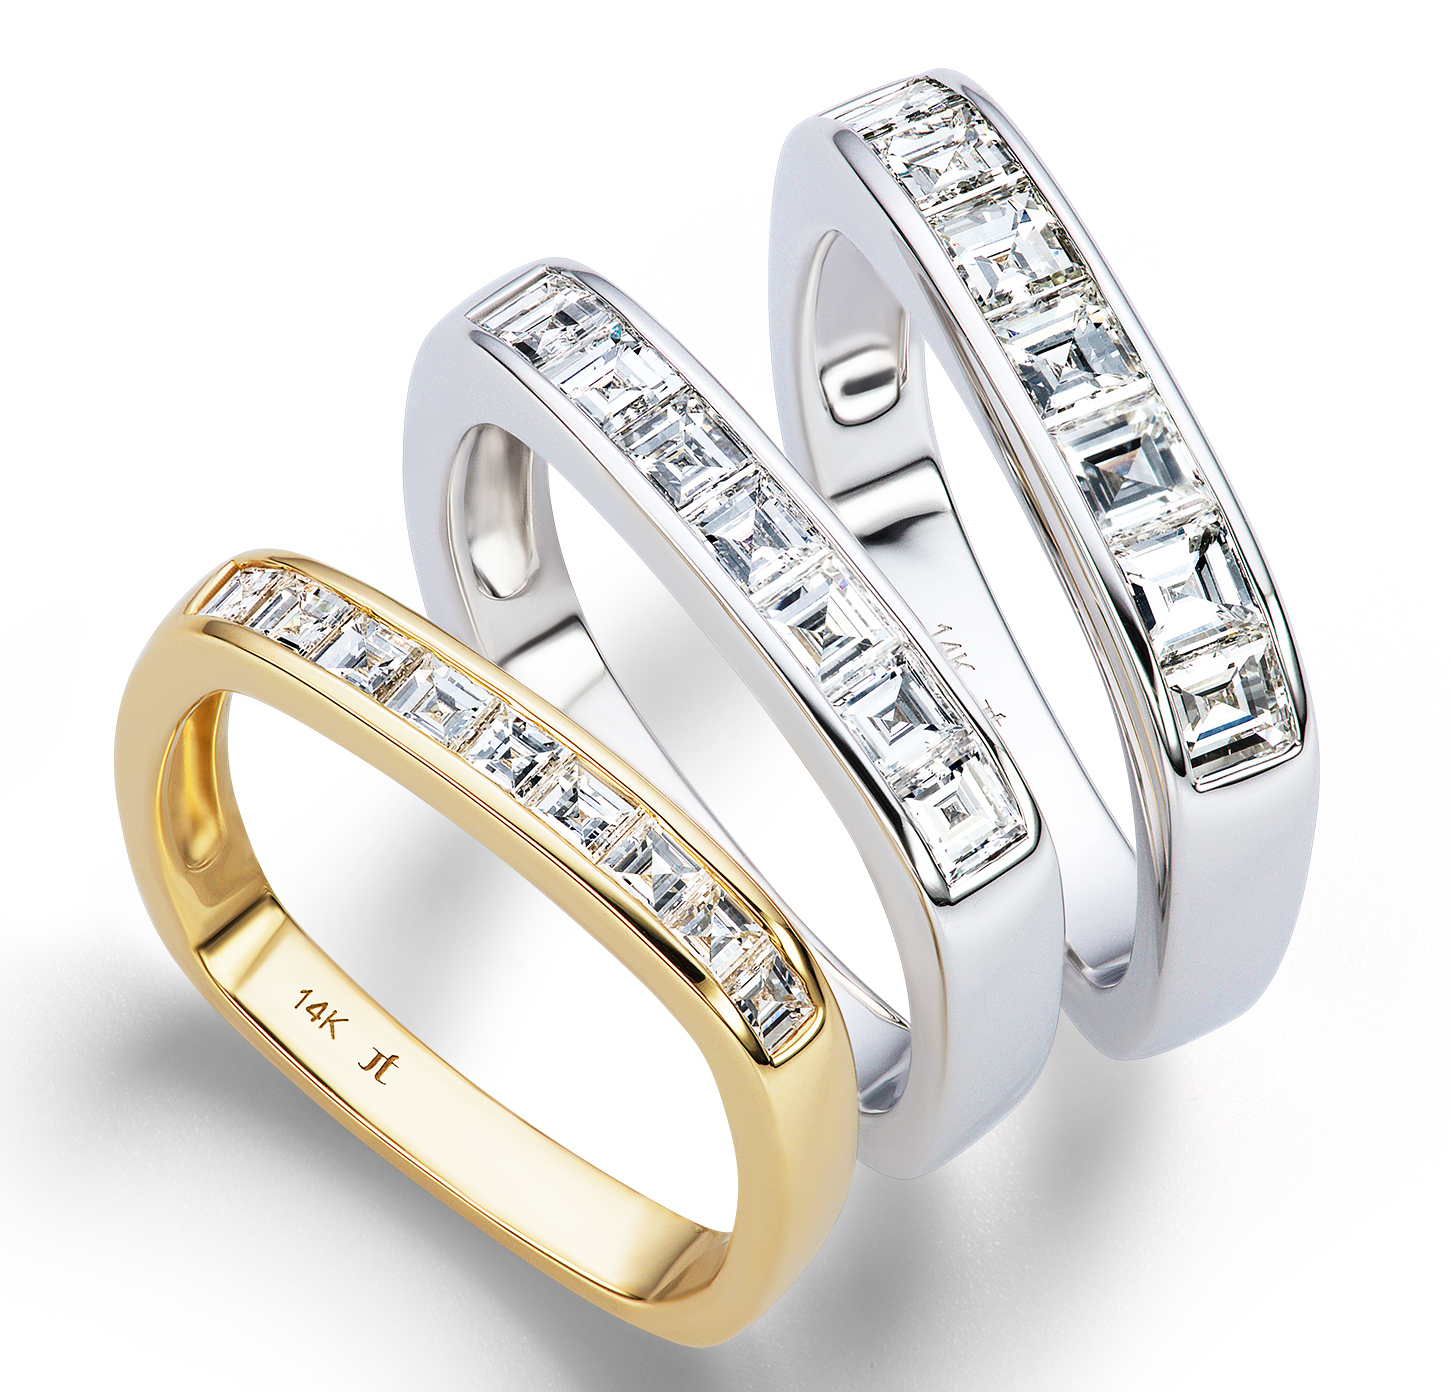 Jane Taylor Jewelry wedding ring trio | JCK On Your Market